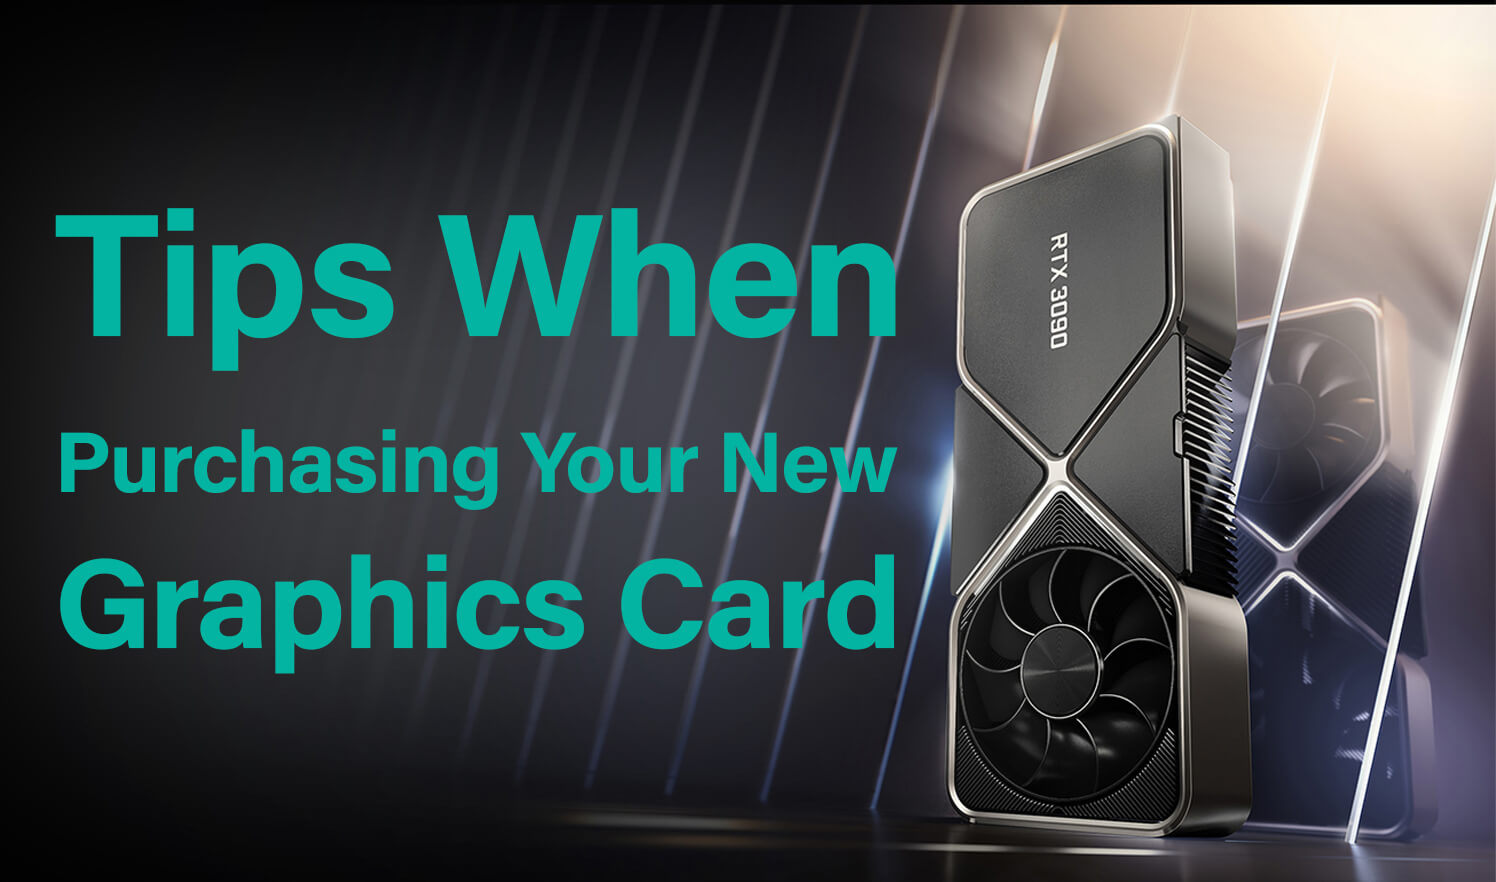 Tips When Purchasing Your New Graphics Card